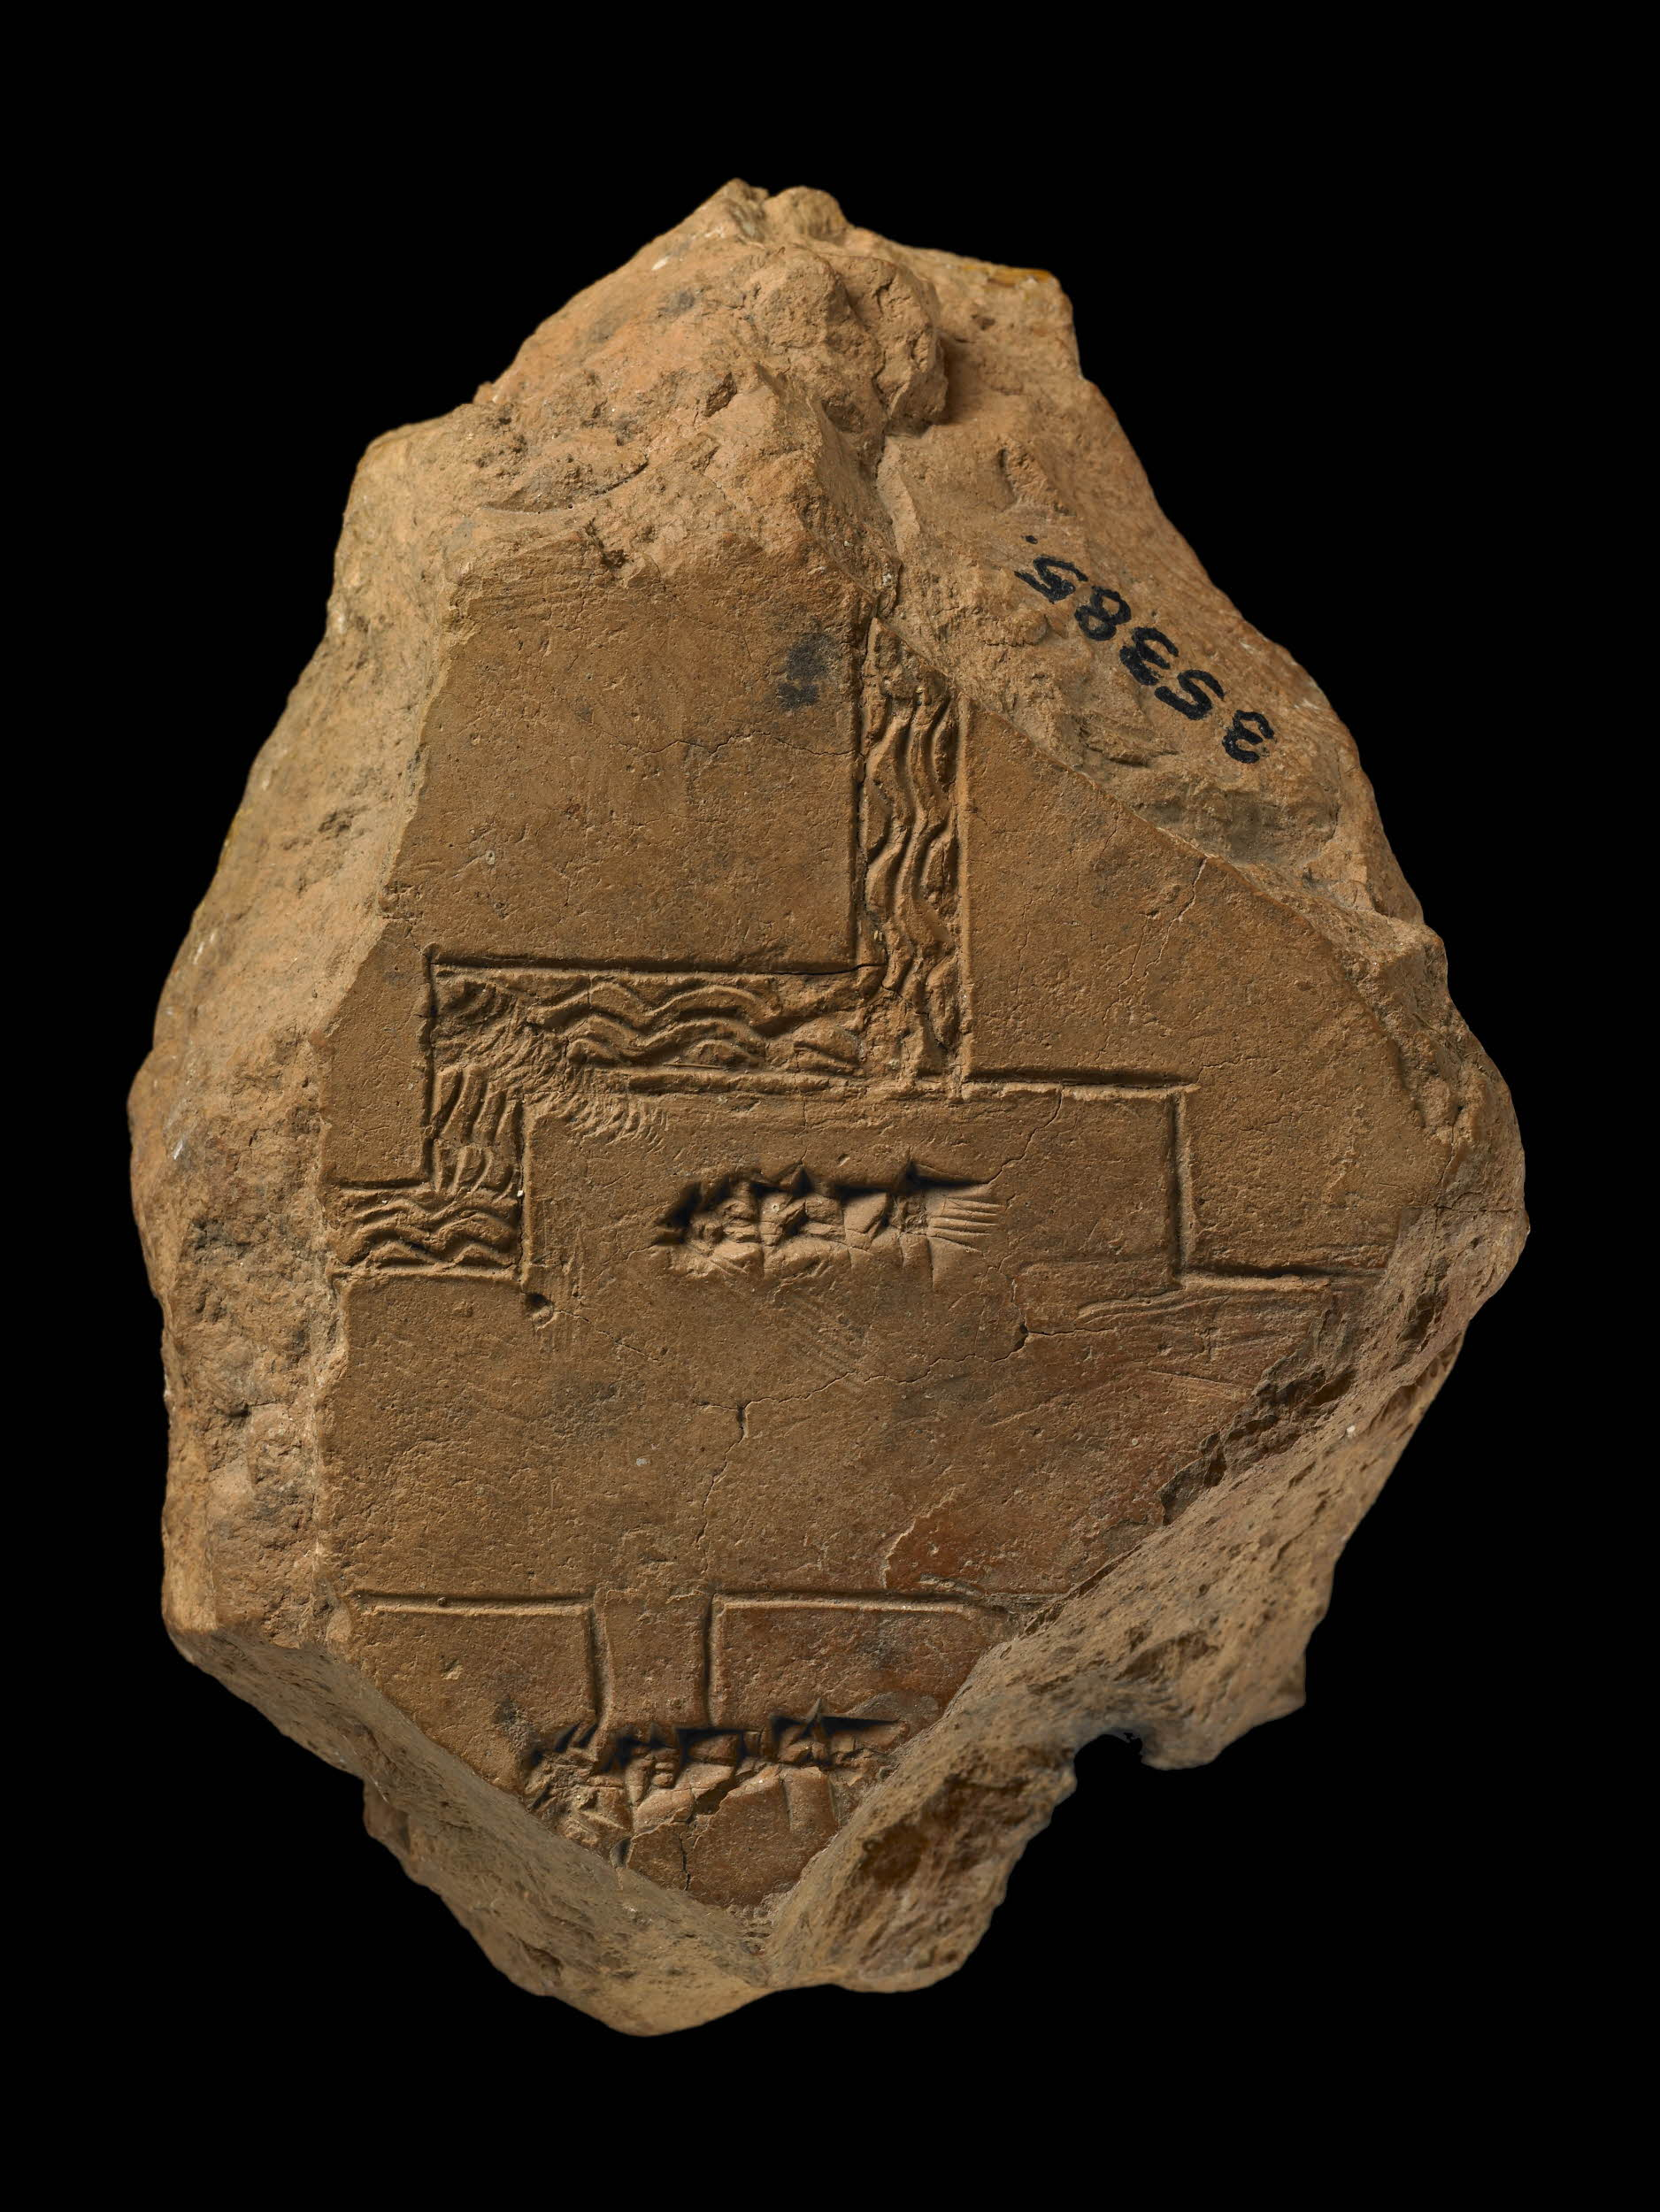 Fragment of a city plan labelled 'Tuba'.